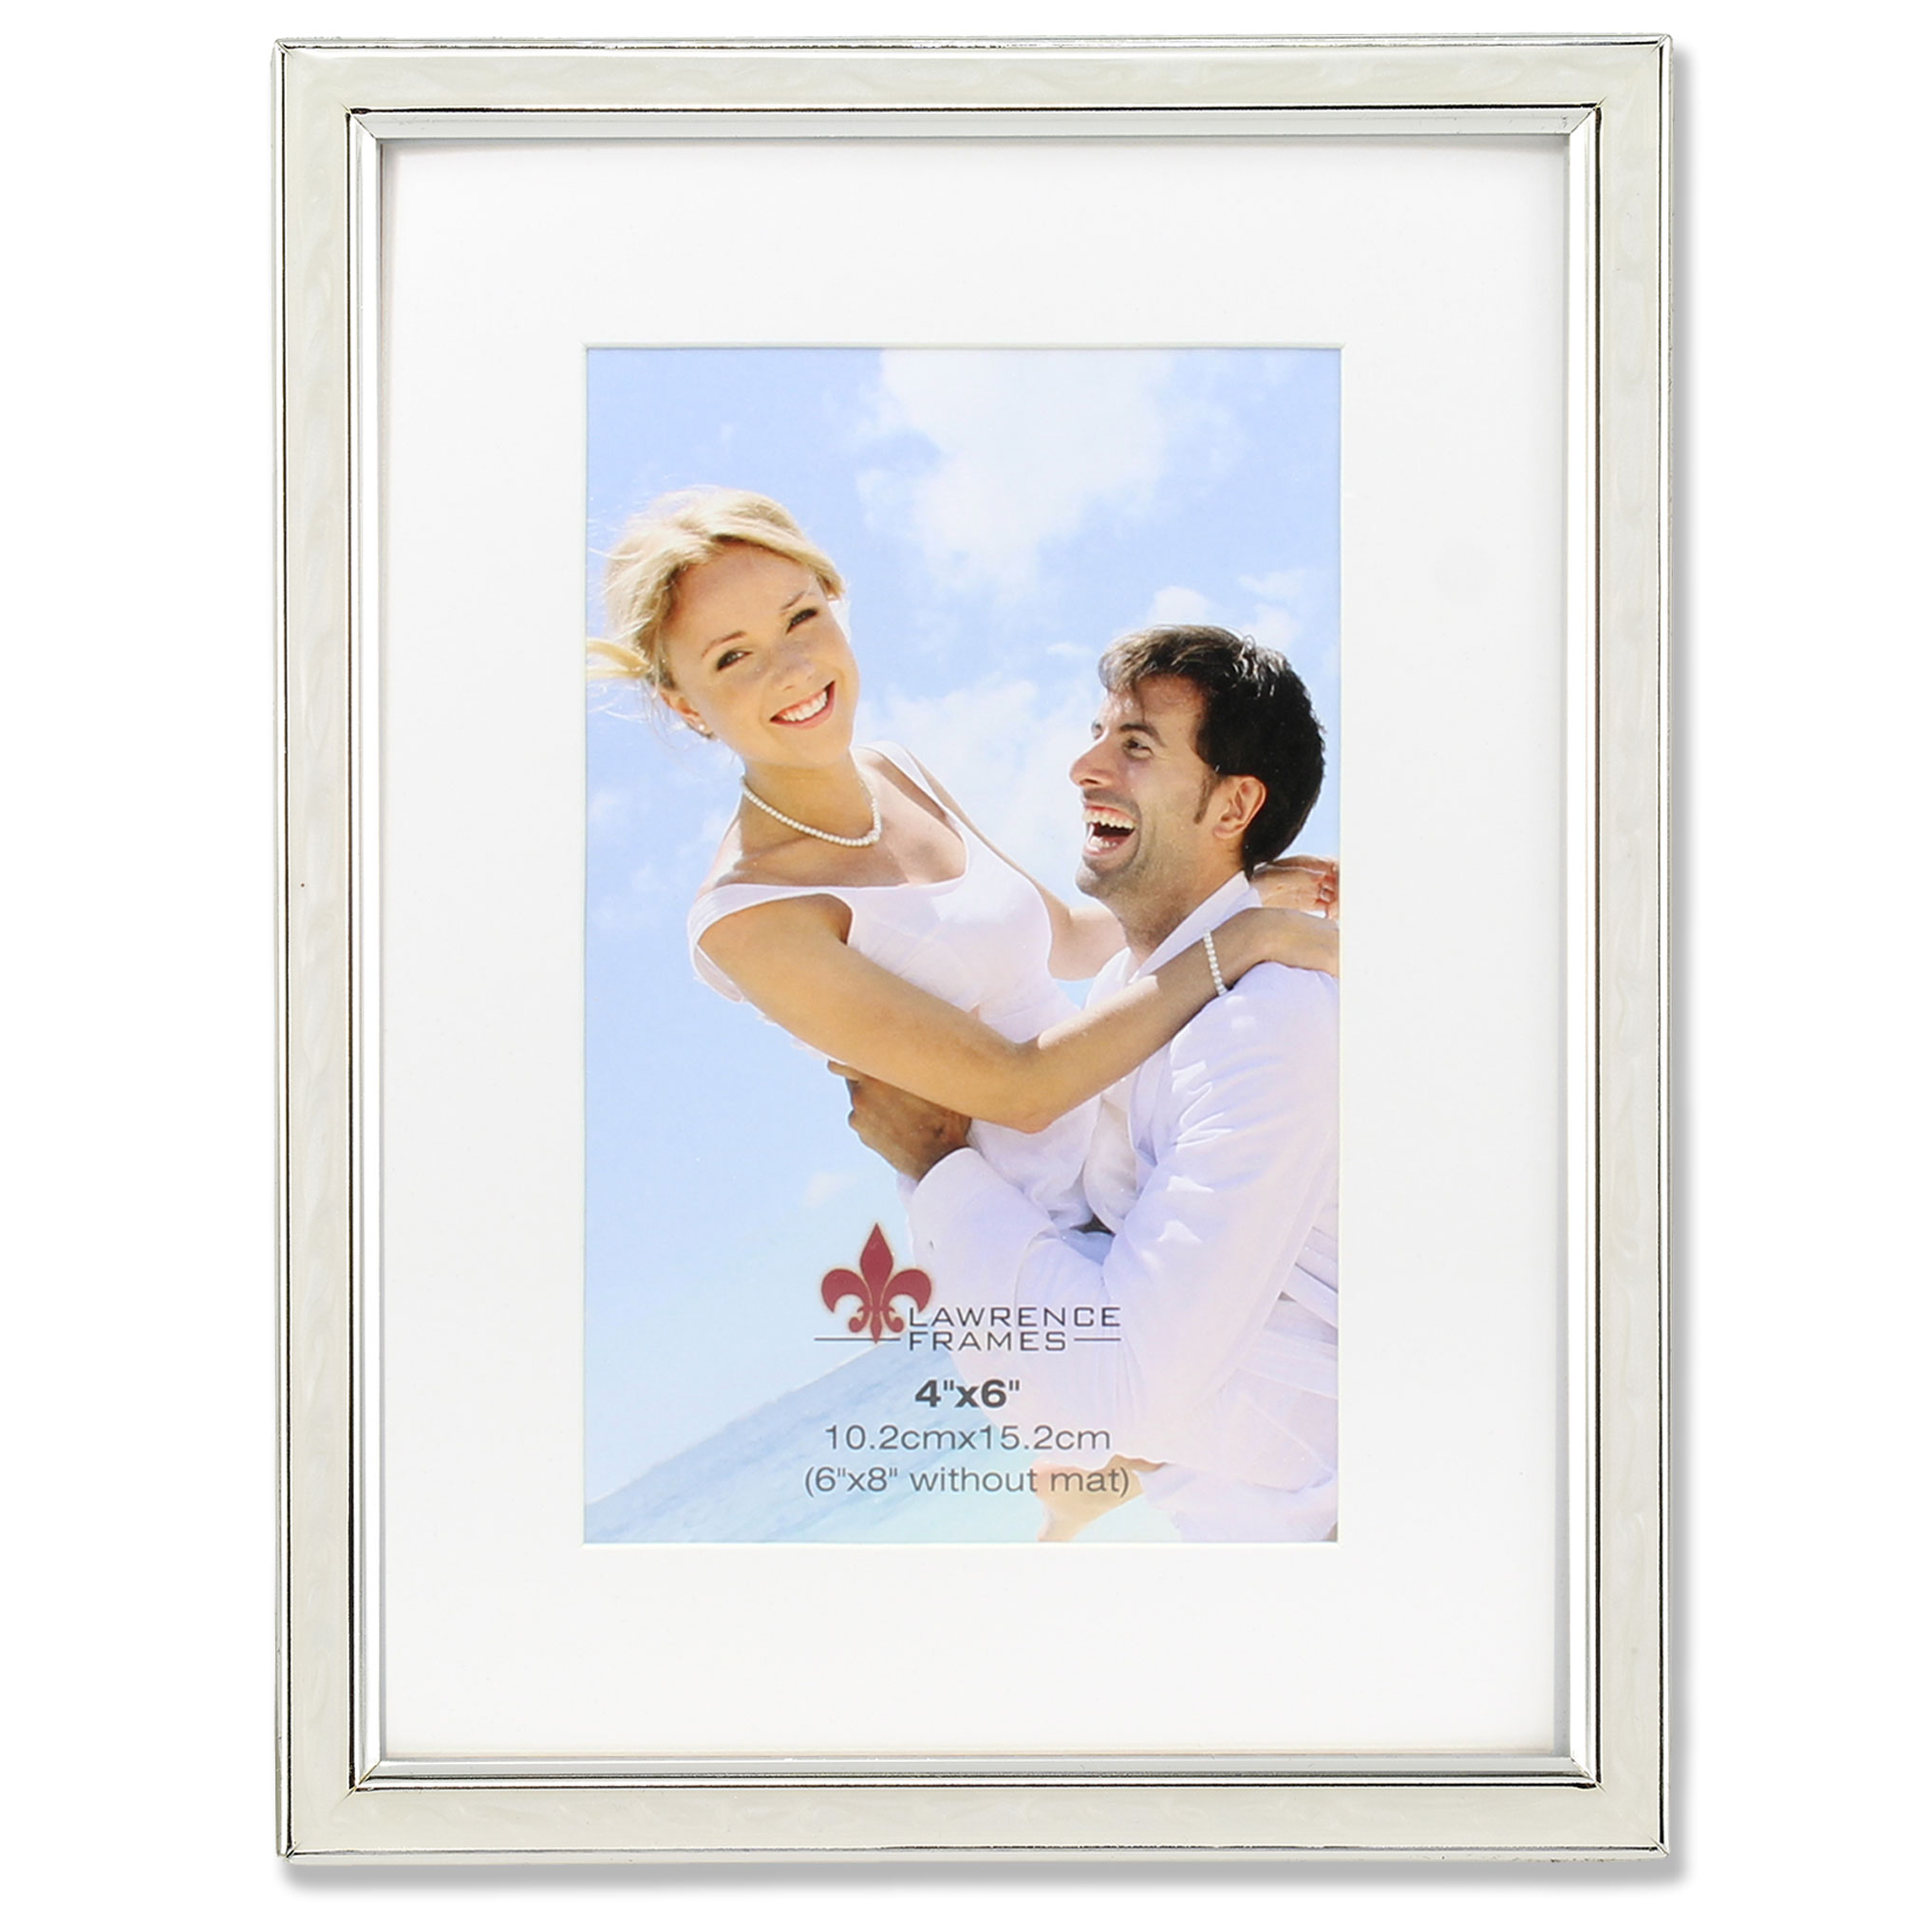 4x6 Matted Ivory Enamel and Silver Metal Picture Frame - 6x8 Without ...